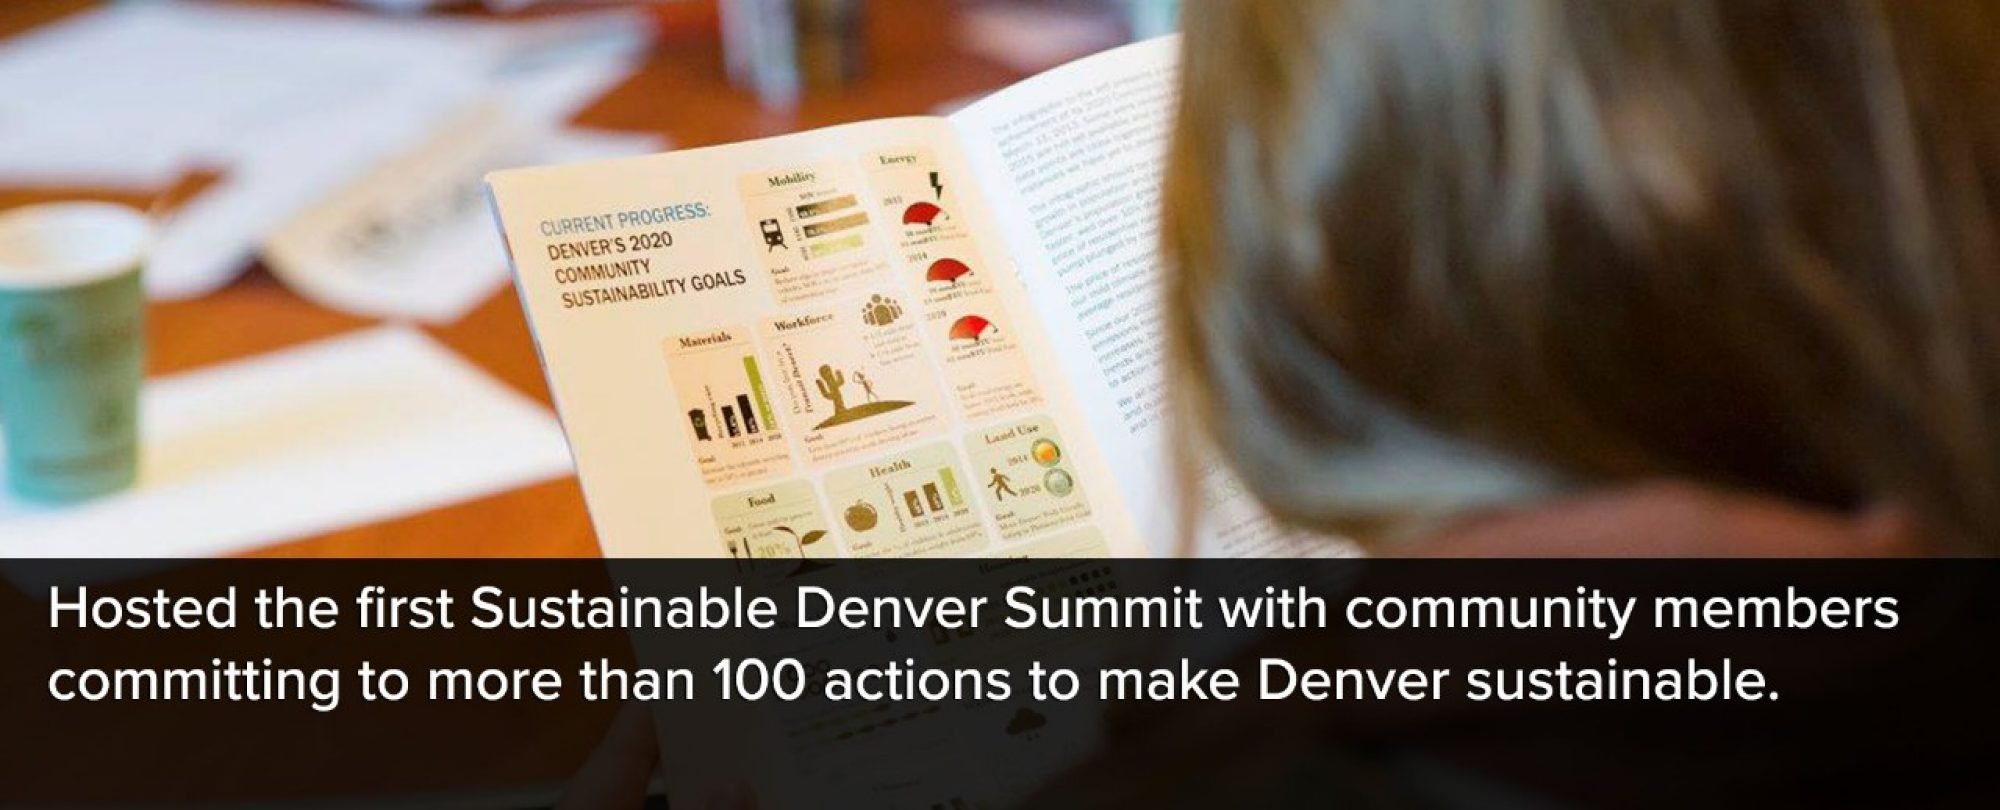 Photo of someone holding a Sustainable Denver Summit brochure. Denver hosted the first Sustainable Denver Summit with community members committing to more than 100 actions to make Denver sustainable.